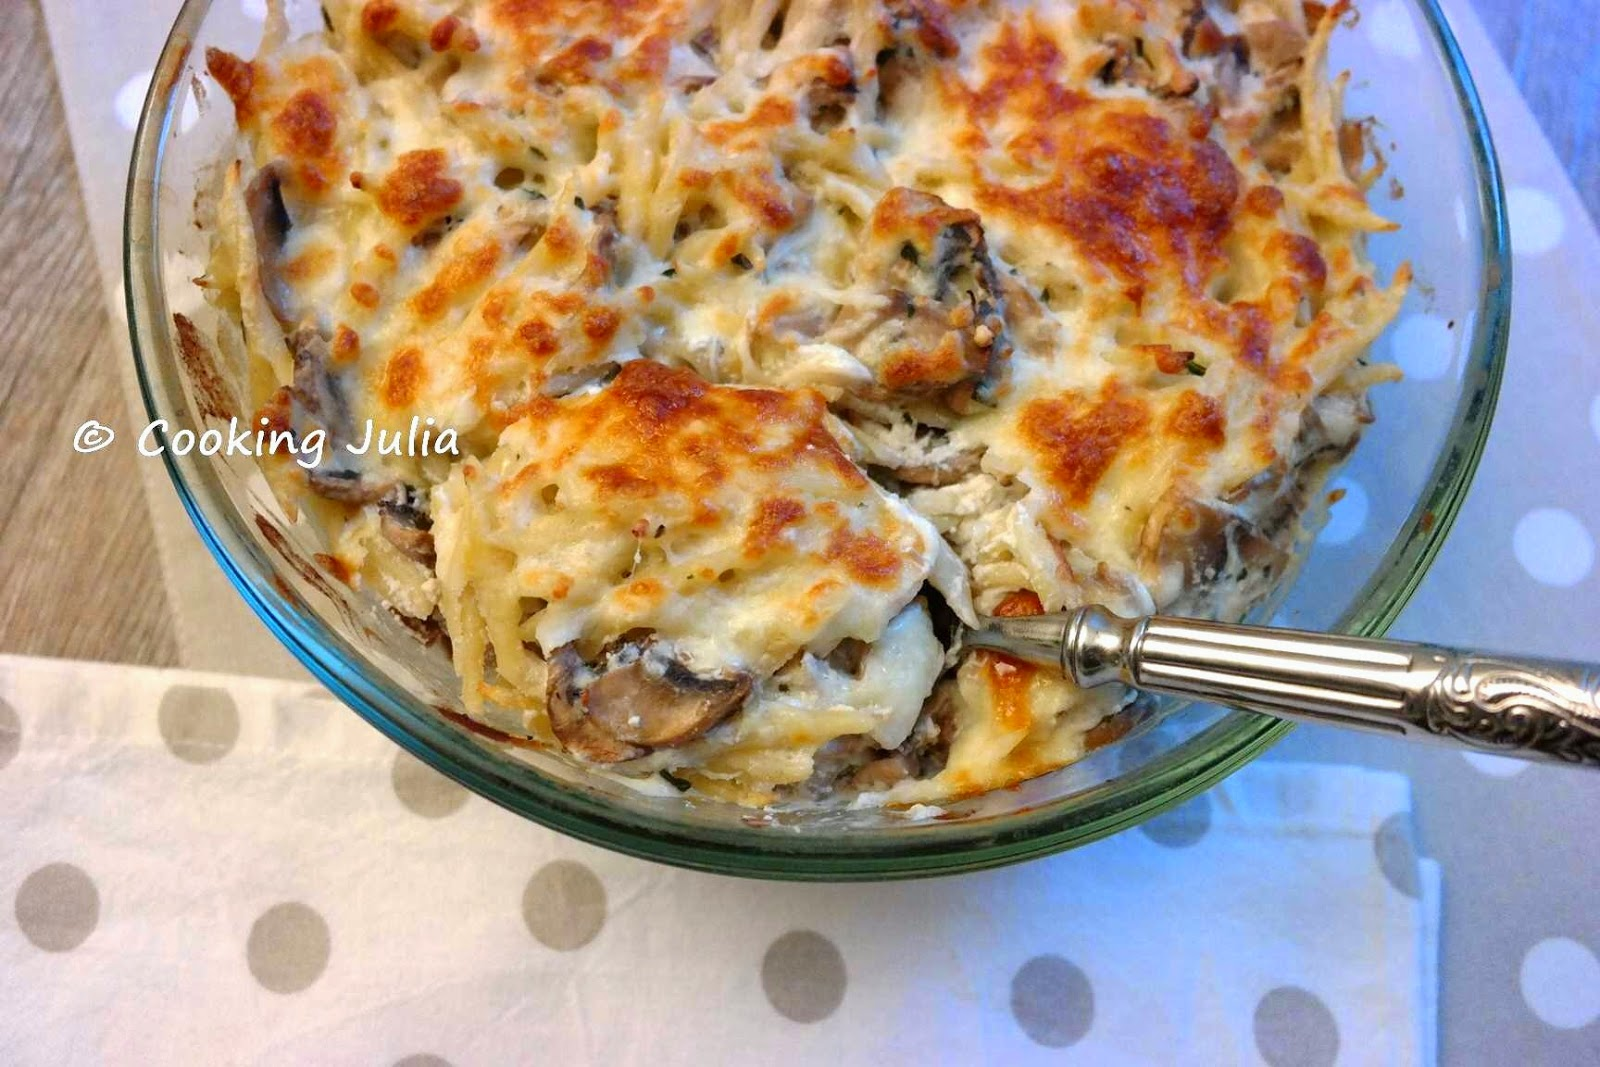 cooking julia gratin de p tes aux champignons. Black Bedroom Furniture Sets. Home Design Ideas